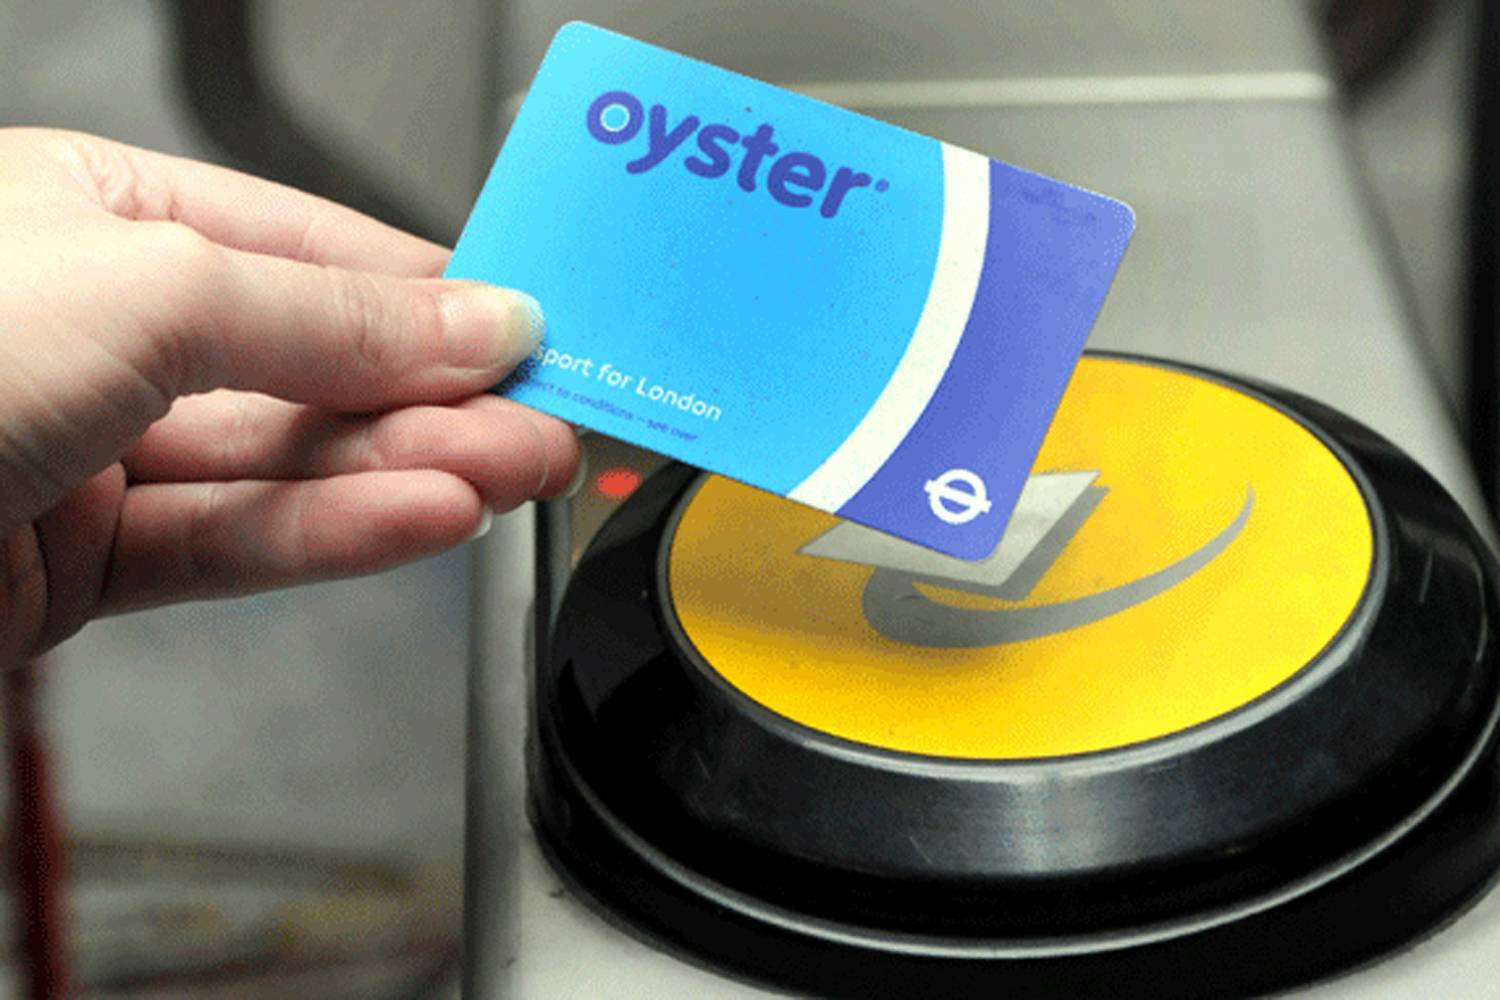 Tfl worker accused of £21,000 Oyster fraud